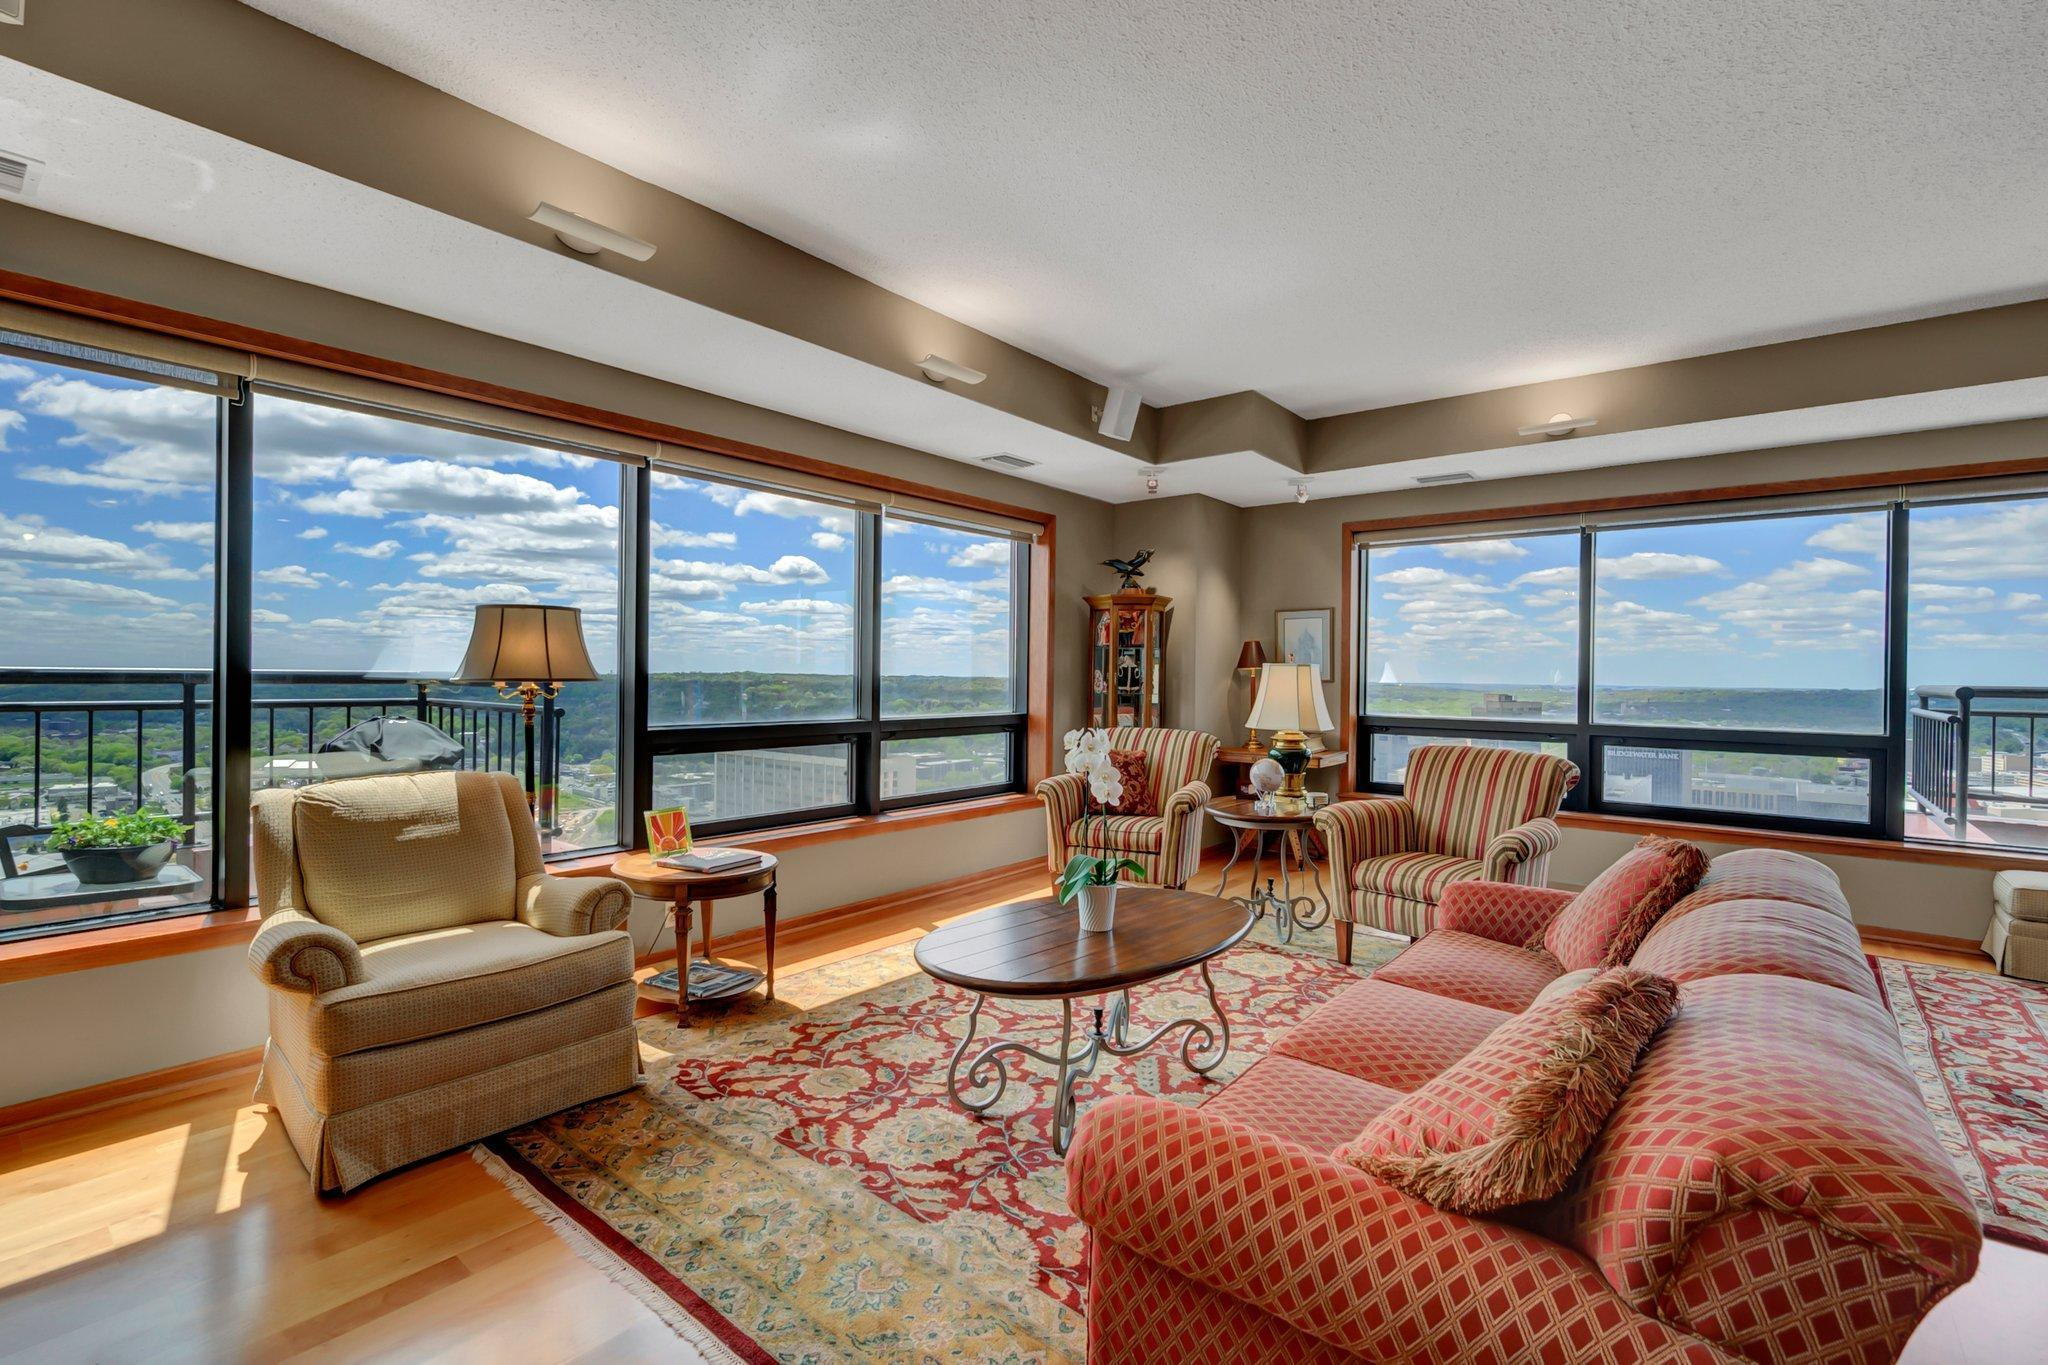 Spectacular skyline & river views up & down the Mississippi River. Great Lowertown location, on Mears Park & the skyway. 2 blocks to CHS Field & the Farmer's Market. Walk to restaurants, entertainment & the river trails. Wonder open floor plan is perfect for entertaining. Gorgeous custom kitchen was featured in a magazine, large dining & living spaces, floor to ceiling windows wrap 3 sides of the building & there are  3 balconies to enjoy panoramic views. Relaxing family is set away from the main living area, featuring a special nook with great views. Huge master suite with custom closet, large bath with separate tub & shower. You will love this amazing Lowertown home!